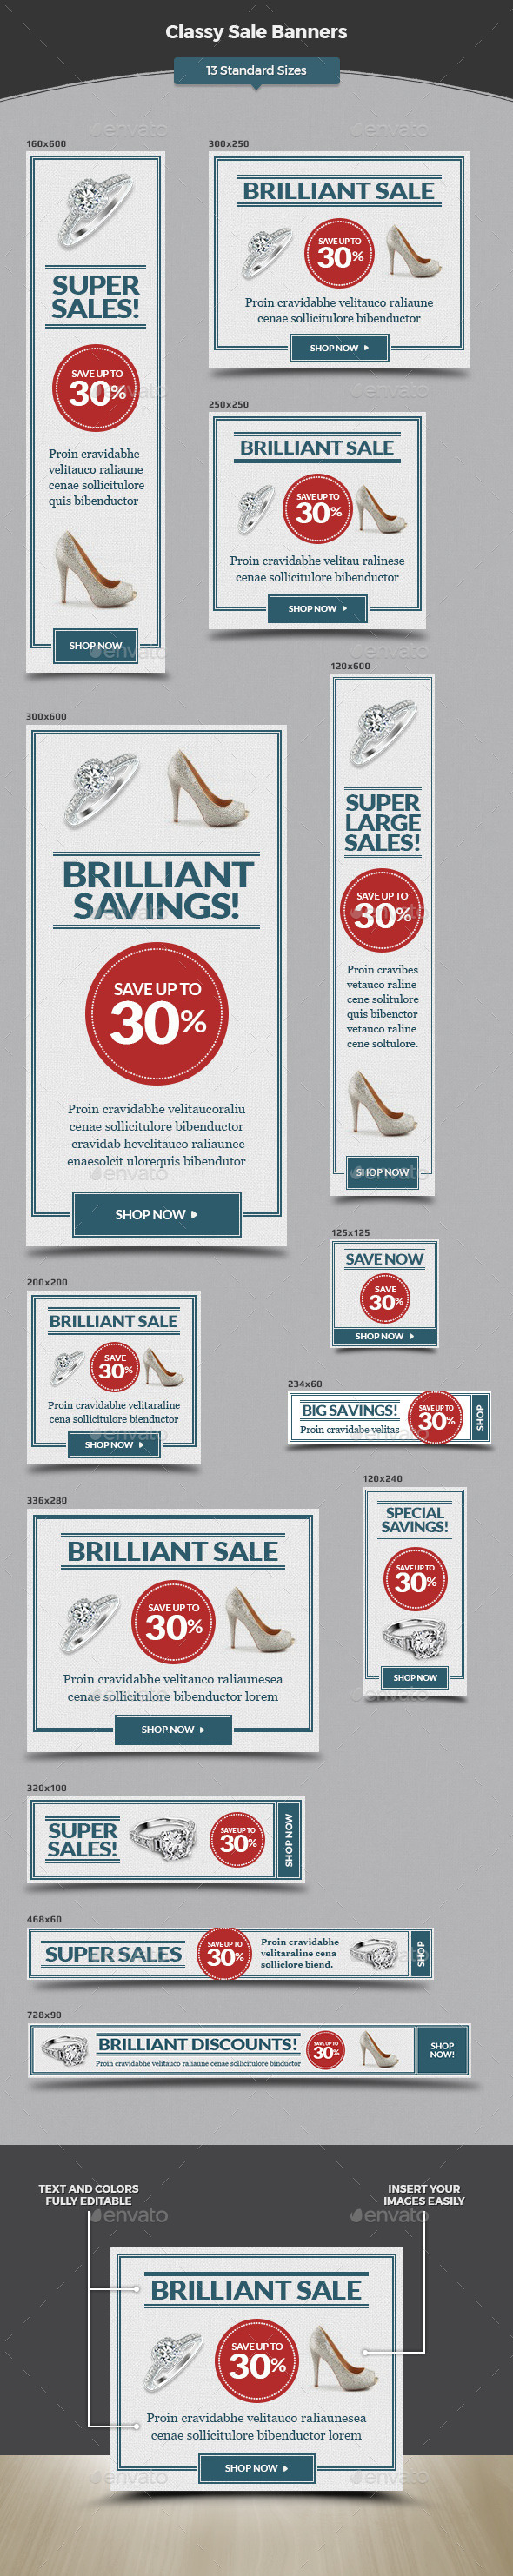 Classy Sale Banners - Banners & Ads Web Elements